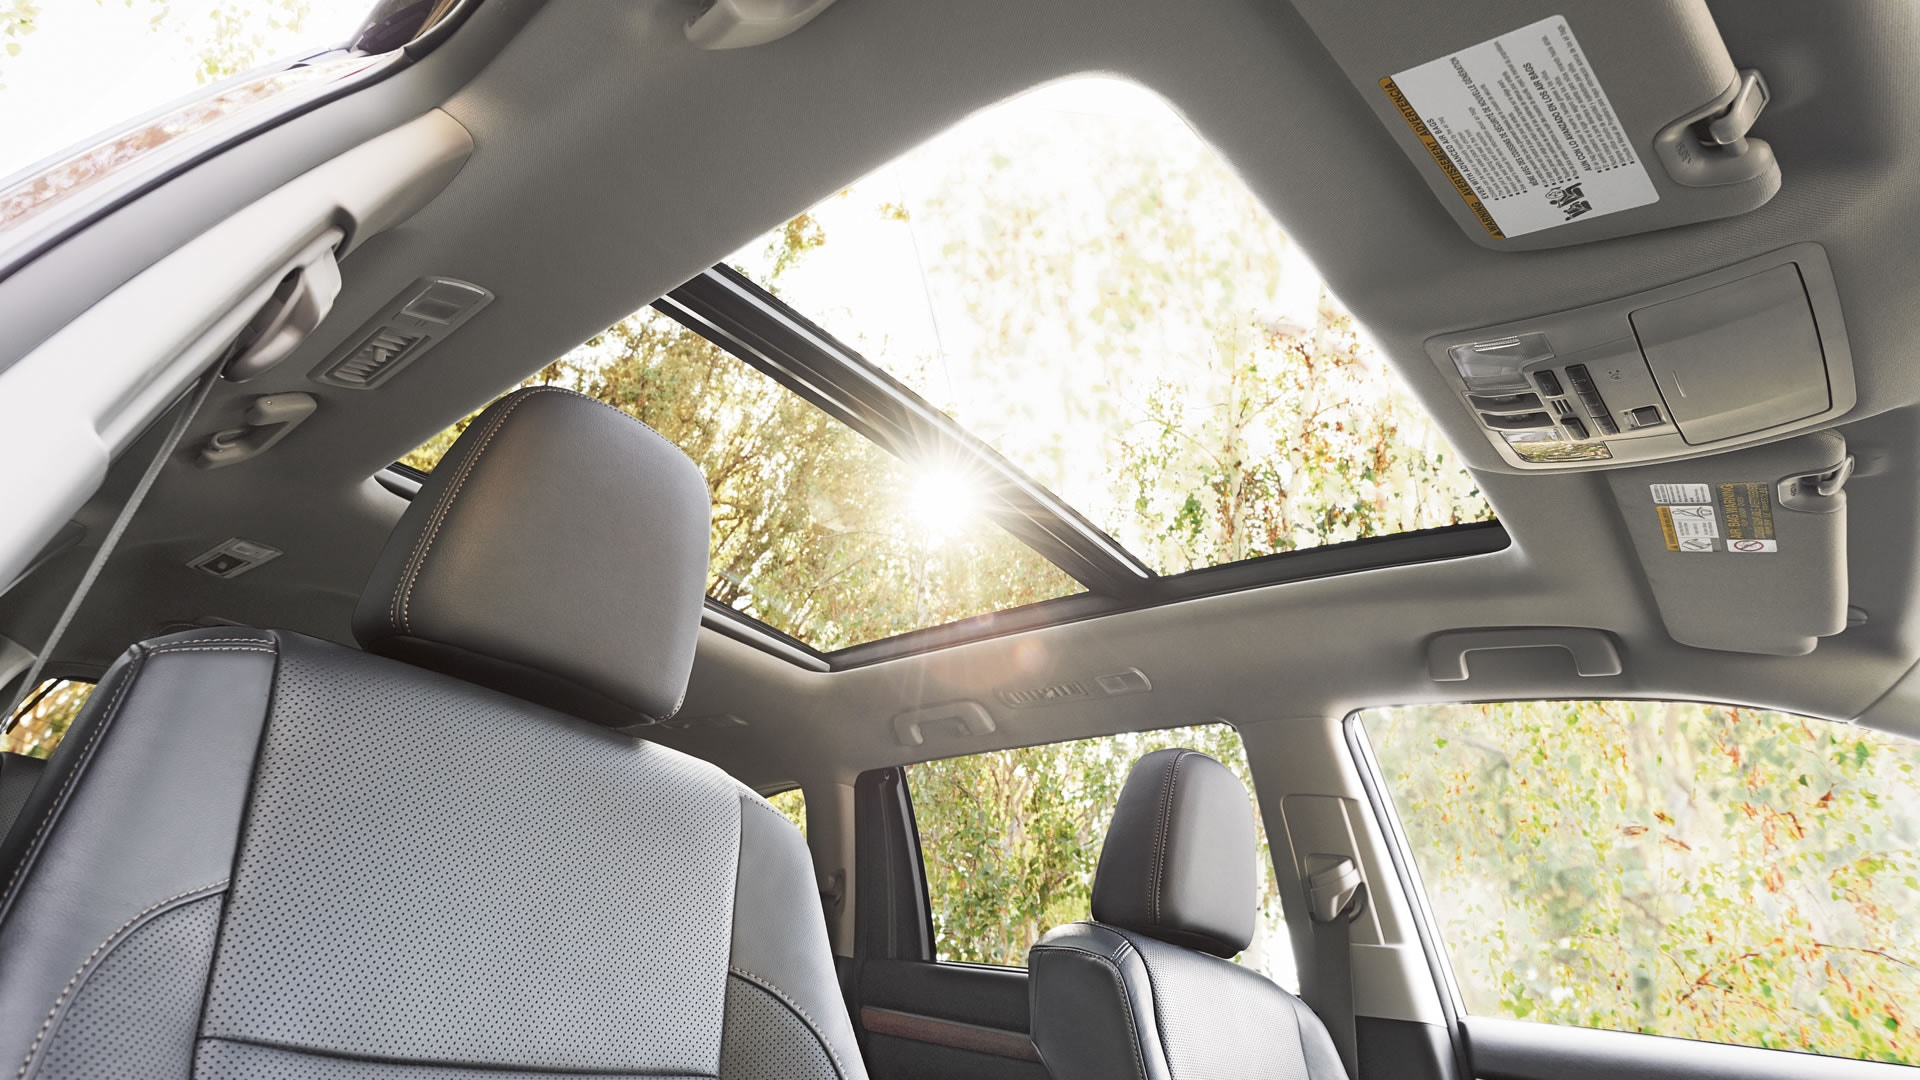 2019 Highlander Panoramic Moonroof